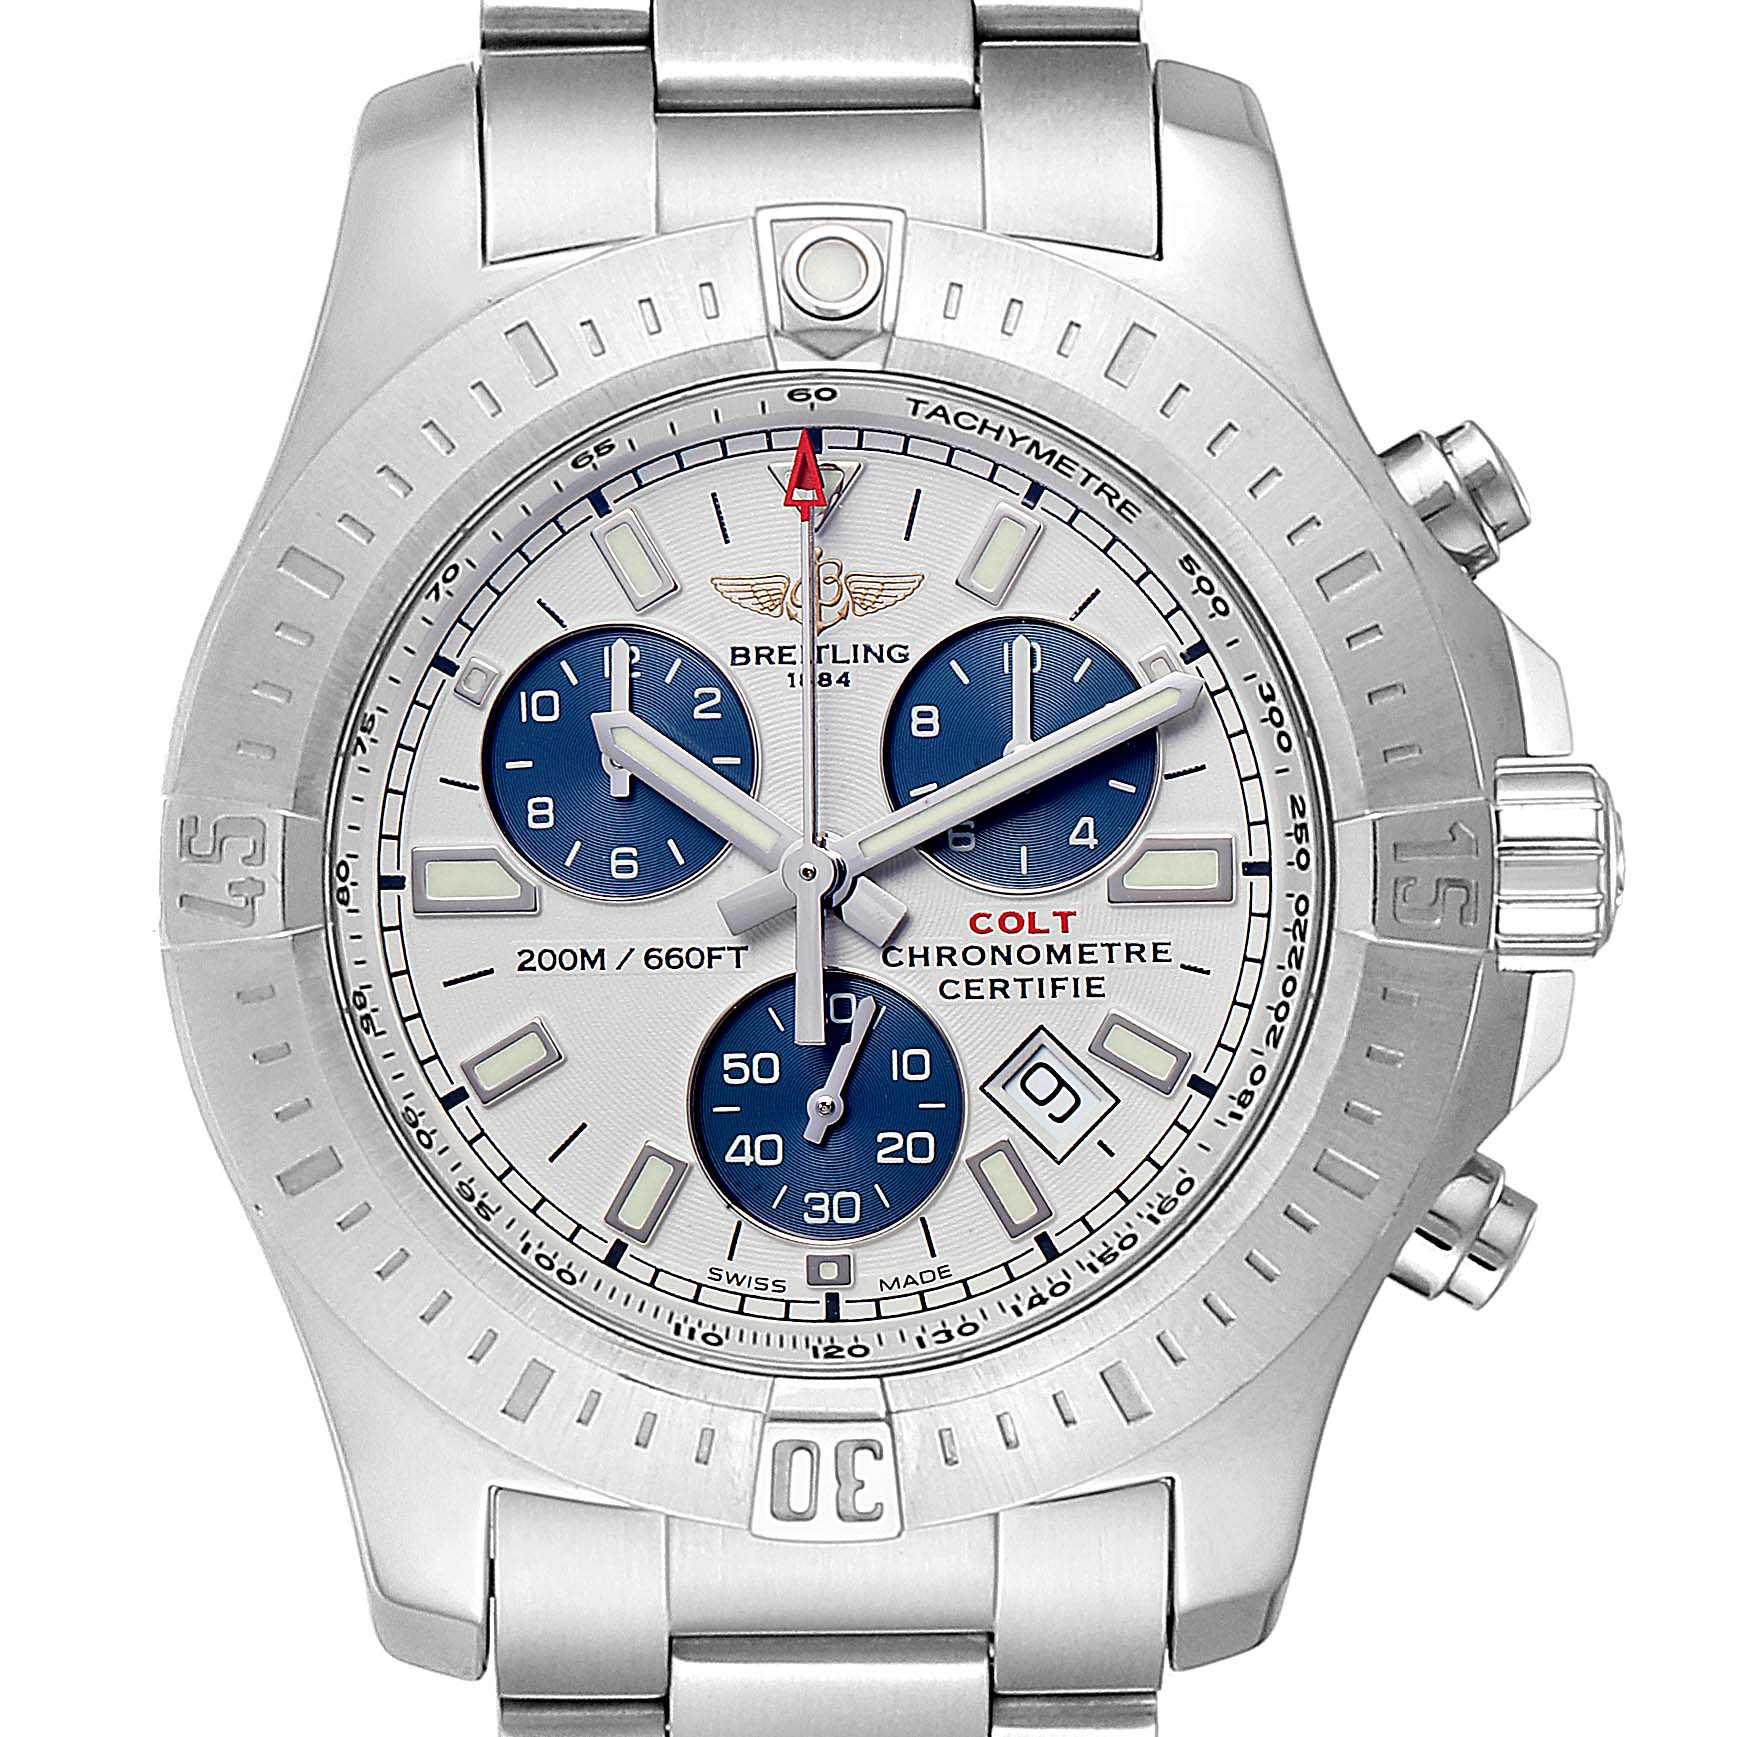 Breitling Colt Automatic Chronograph White Dial Watch A17388 Box Card